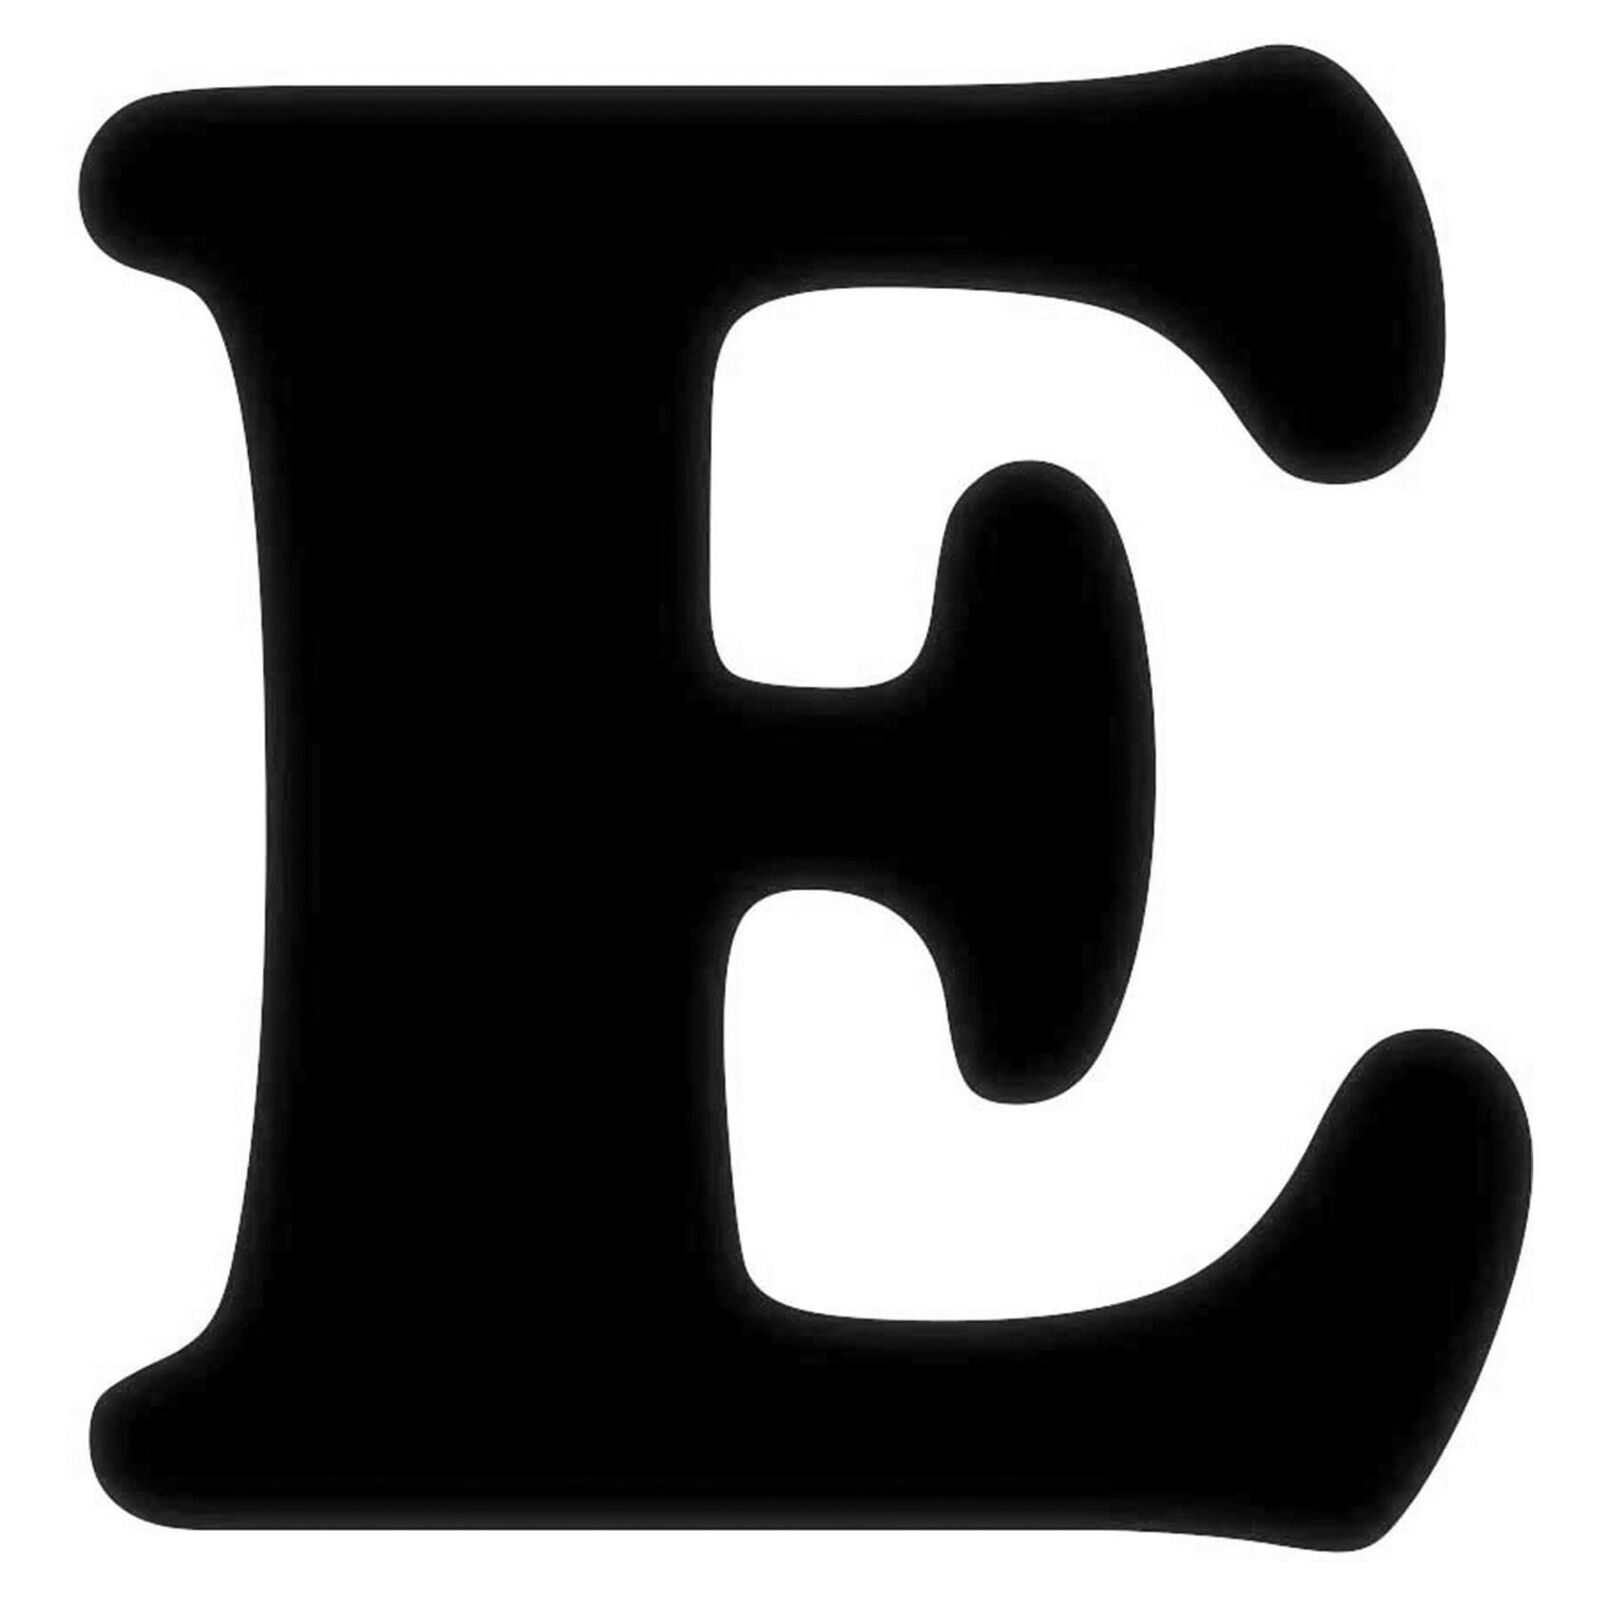 Black And White Letter E Pictures to Pin on Pinterest ...